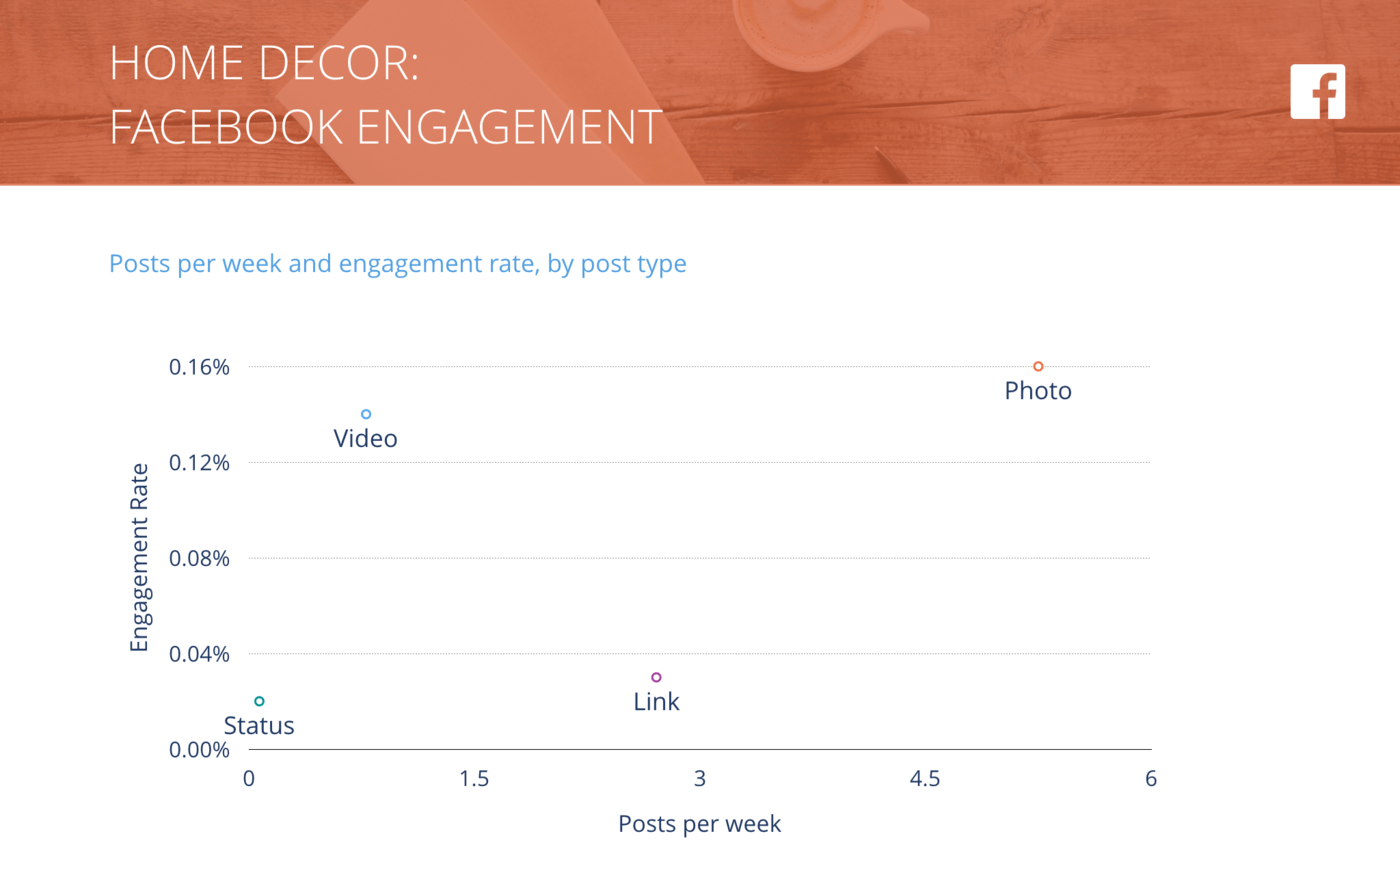 slide for Facebook Posts per Week vs. Engagement Rate per Post, Home Decor